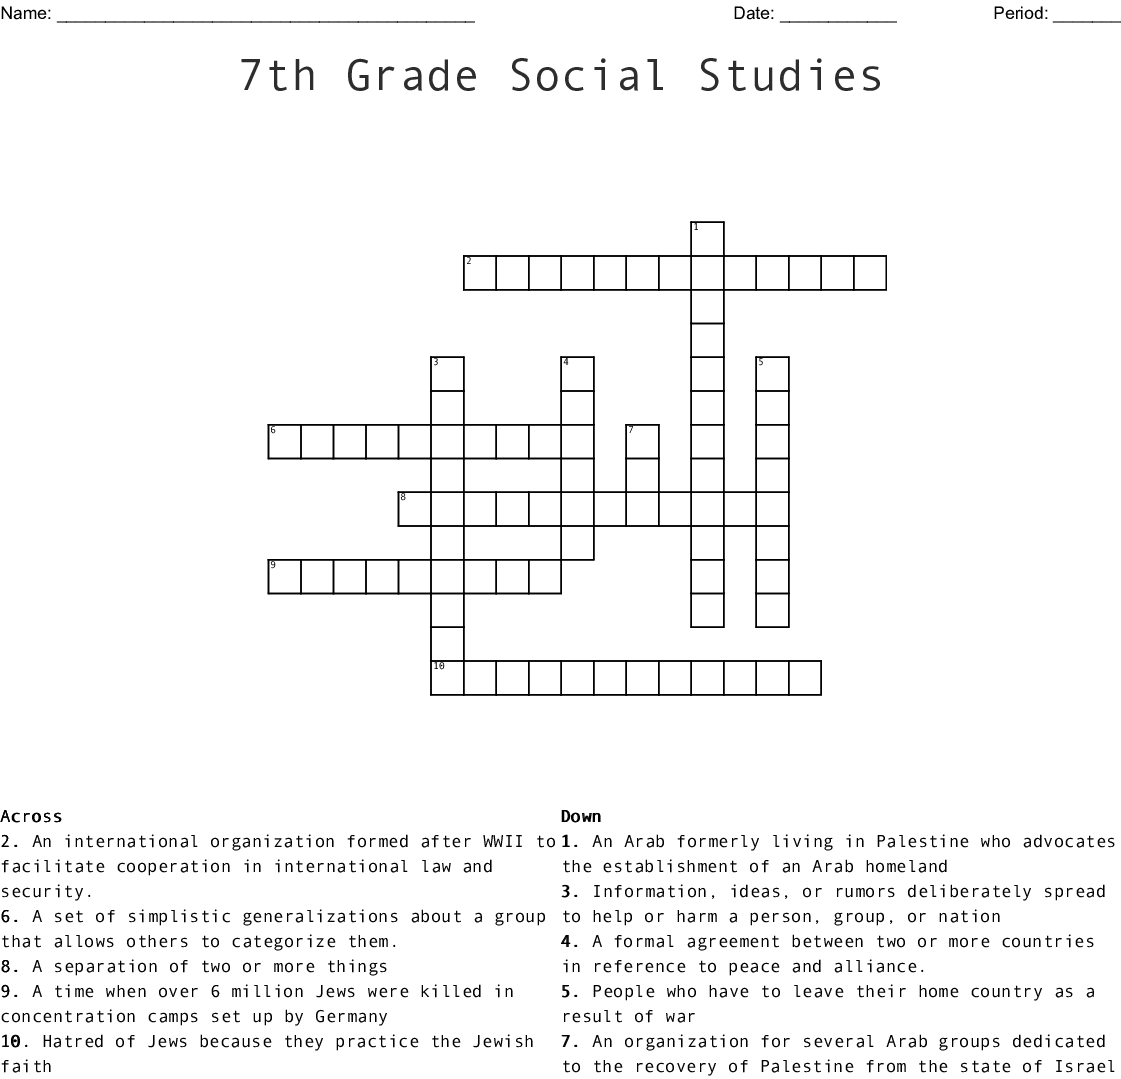 7Th Grade Social Studies Crossword - Wordmint - Crossword Printable 7Th Grade